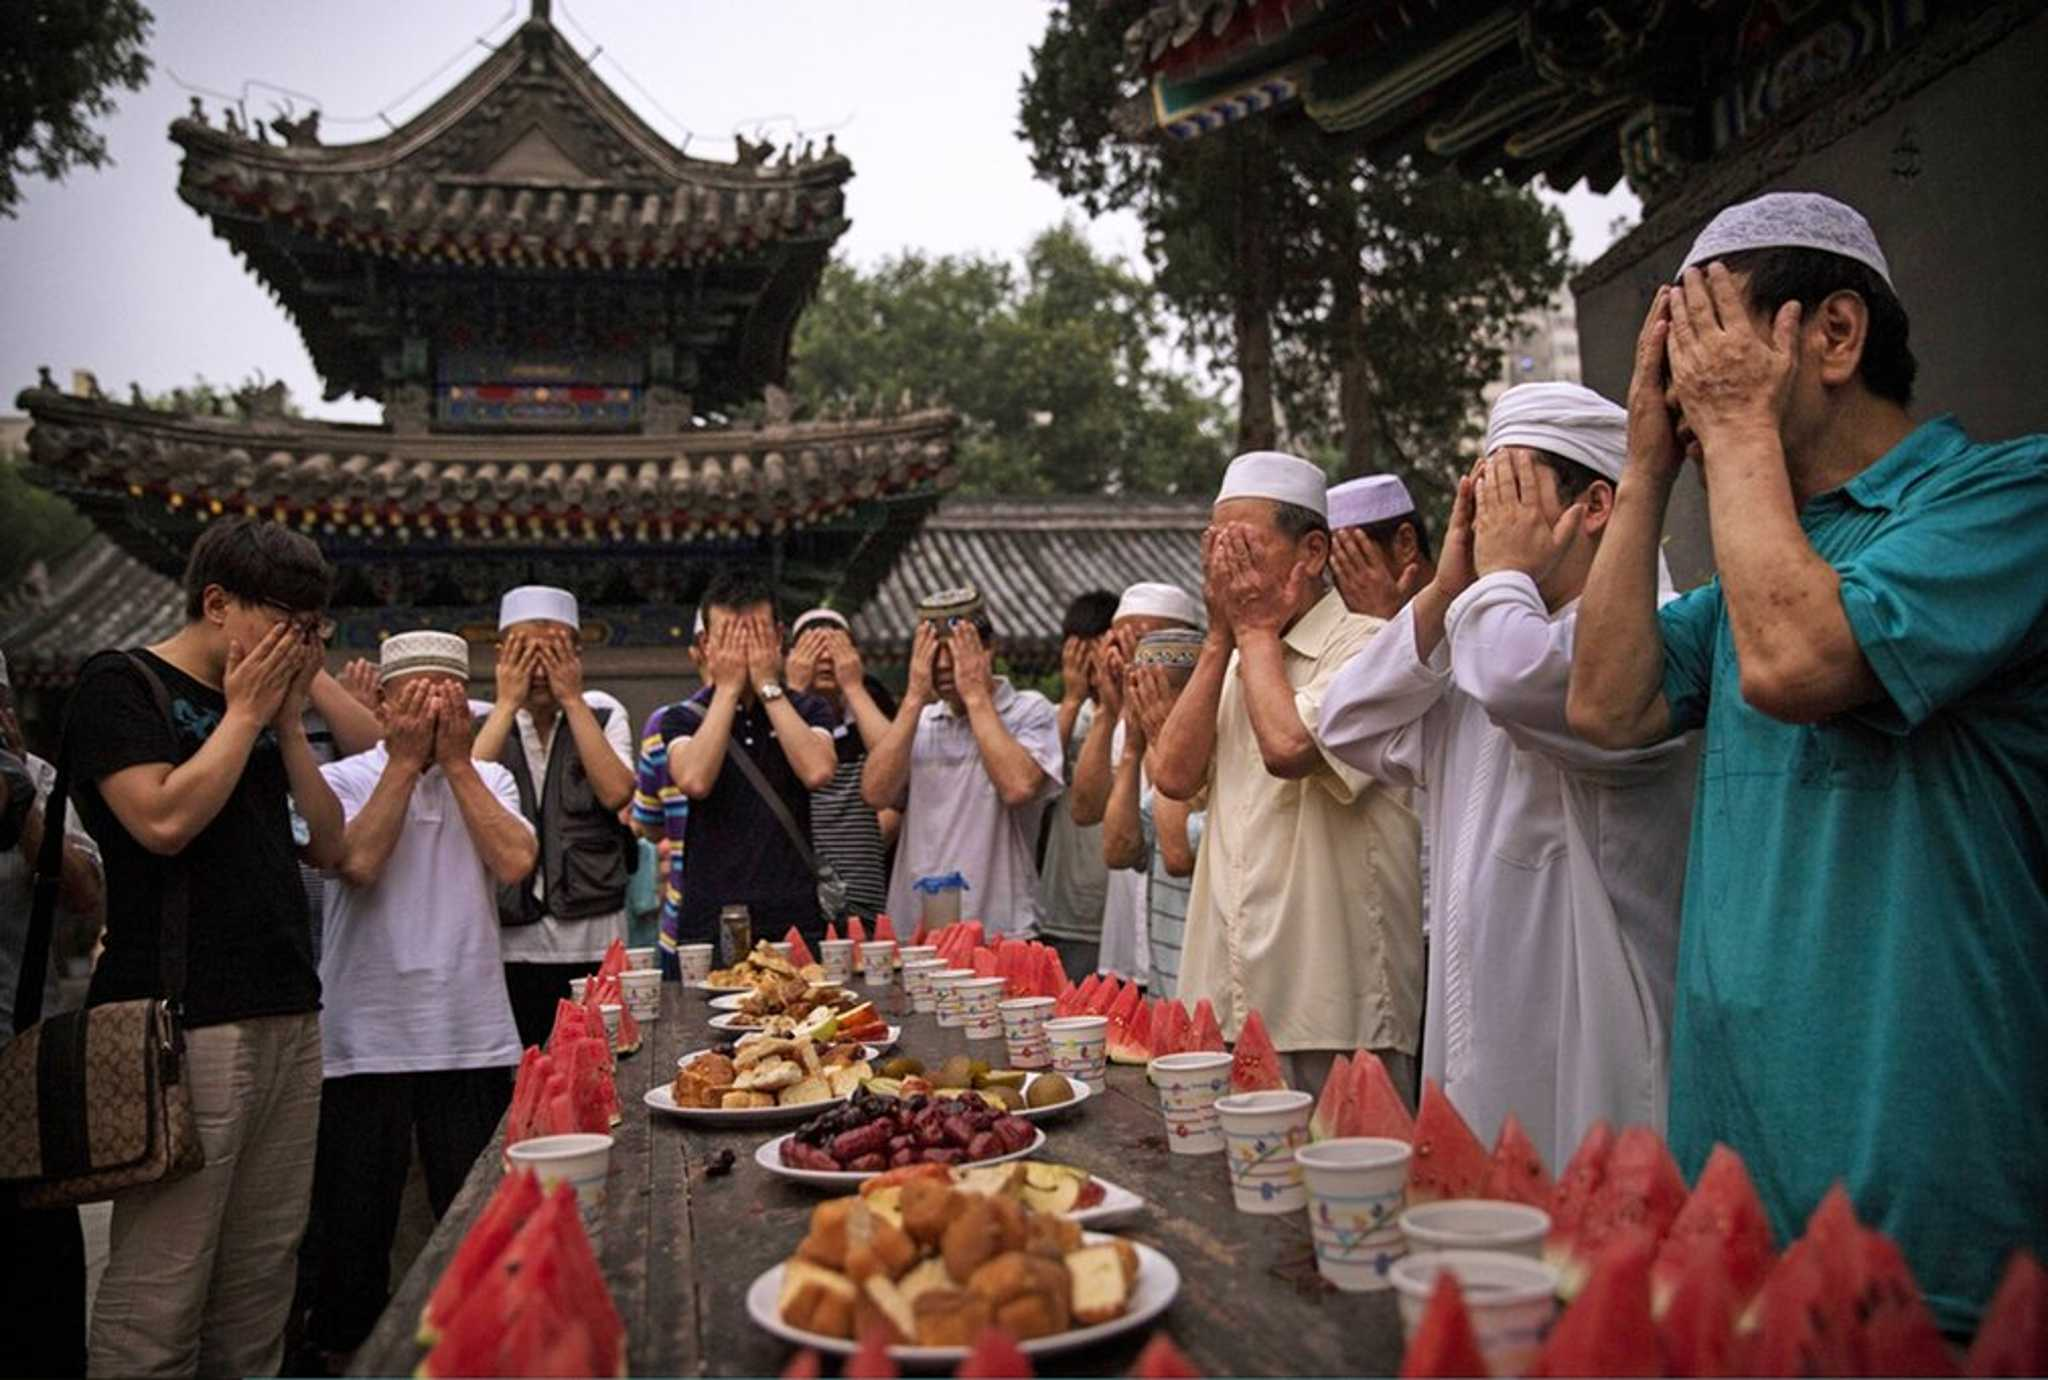 Chinese Muslims of the Hui ethnic minority pray over food before breaking their fast.